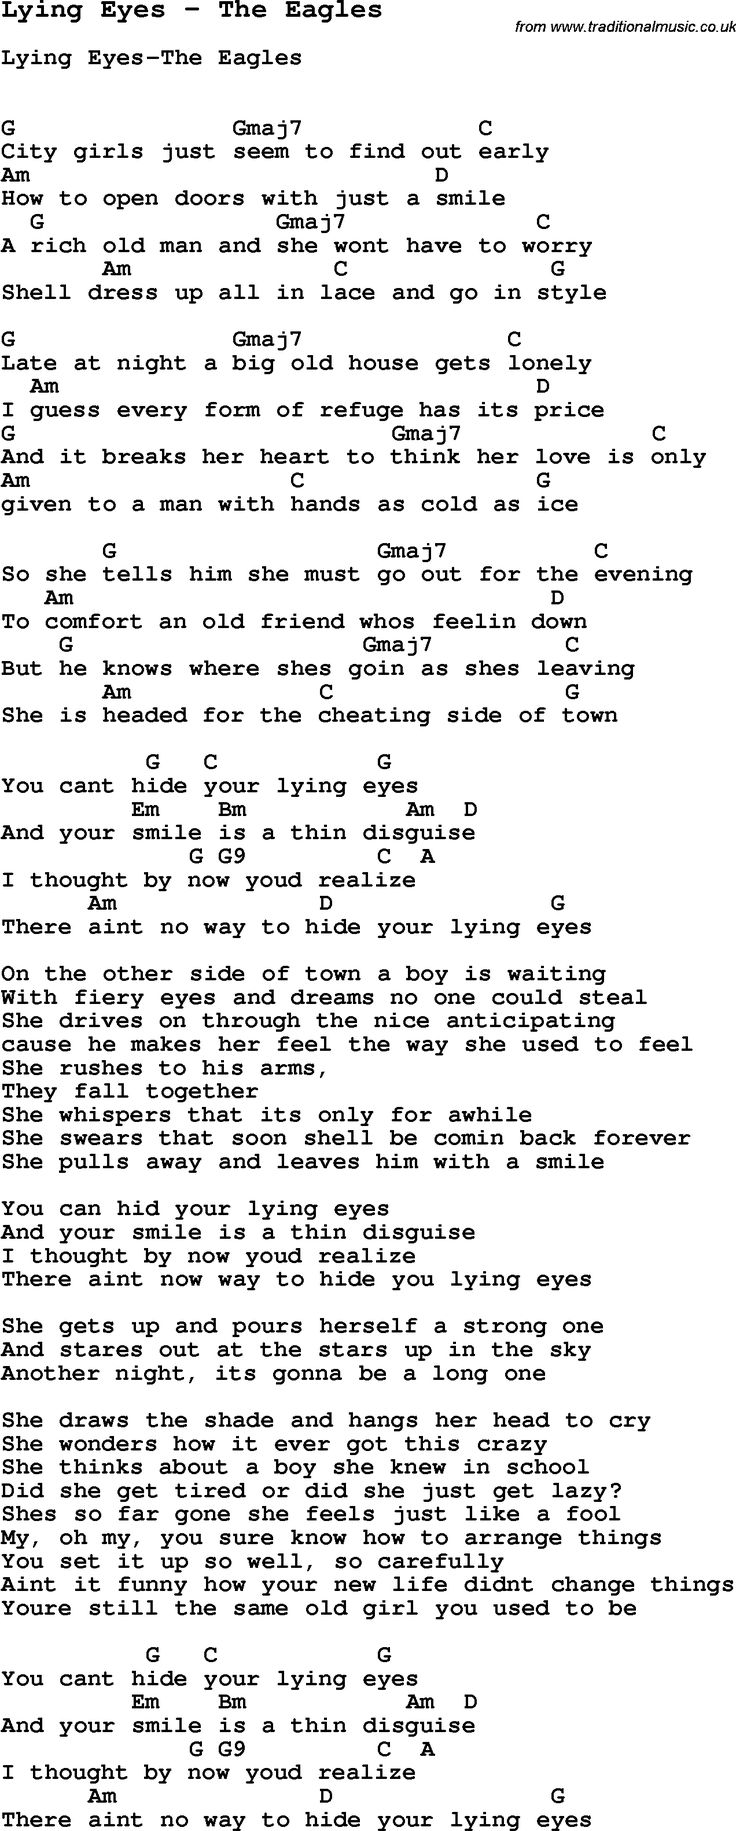 Song Lying Eyes by The Eagles, with lyrics for vocal performance and accompaniment chords for Ukulele, Guitar Banjo etc.